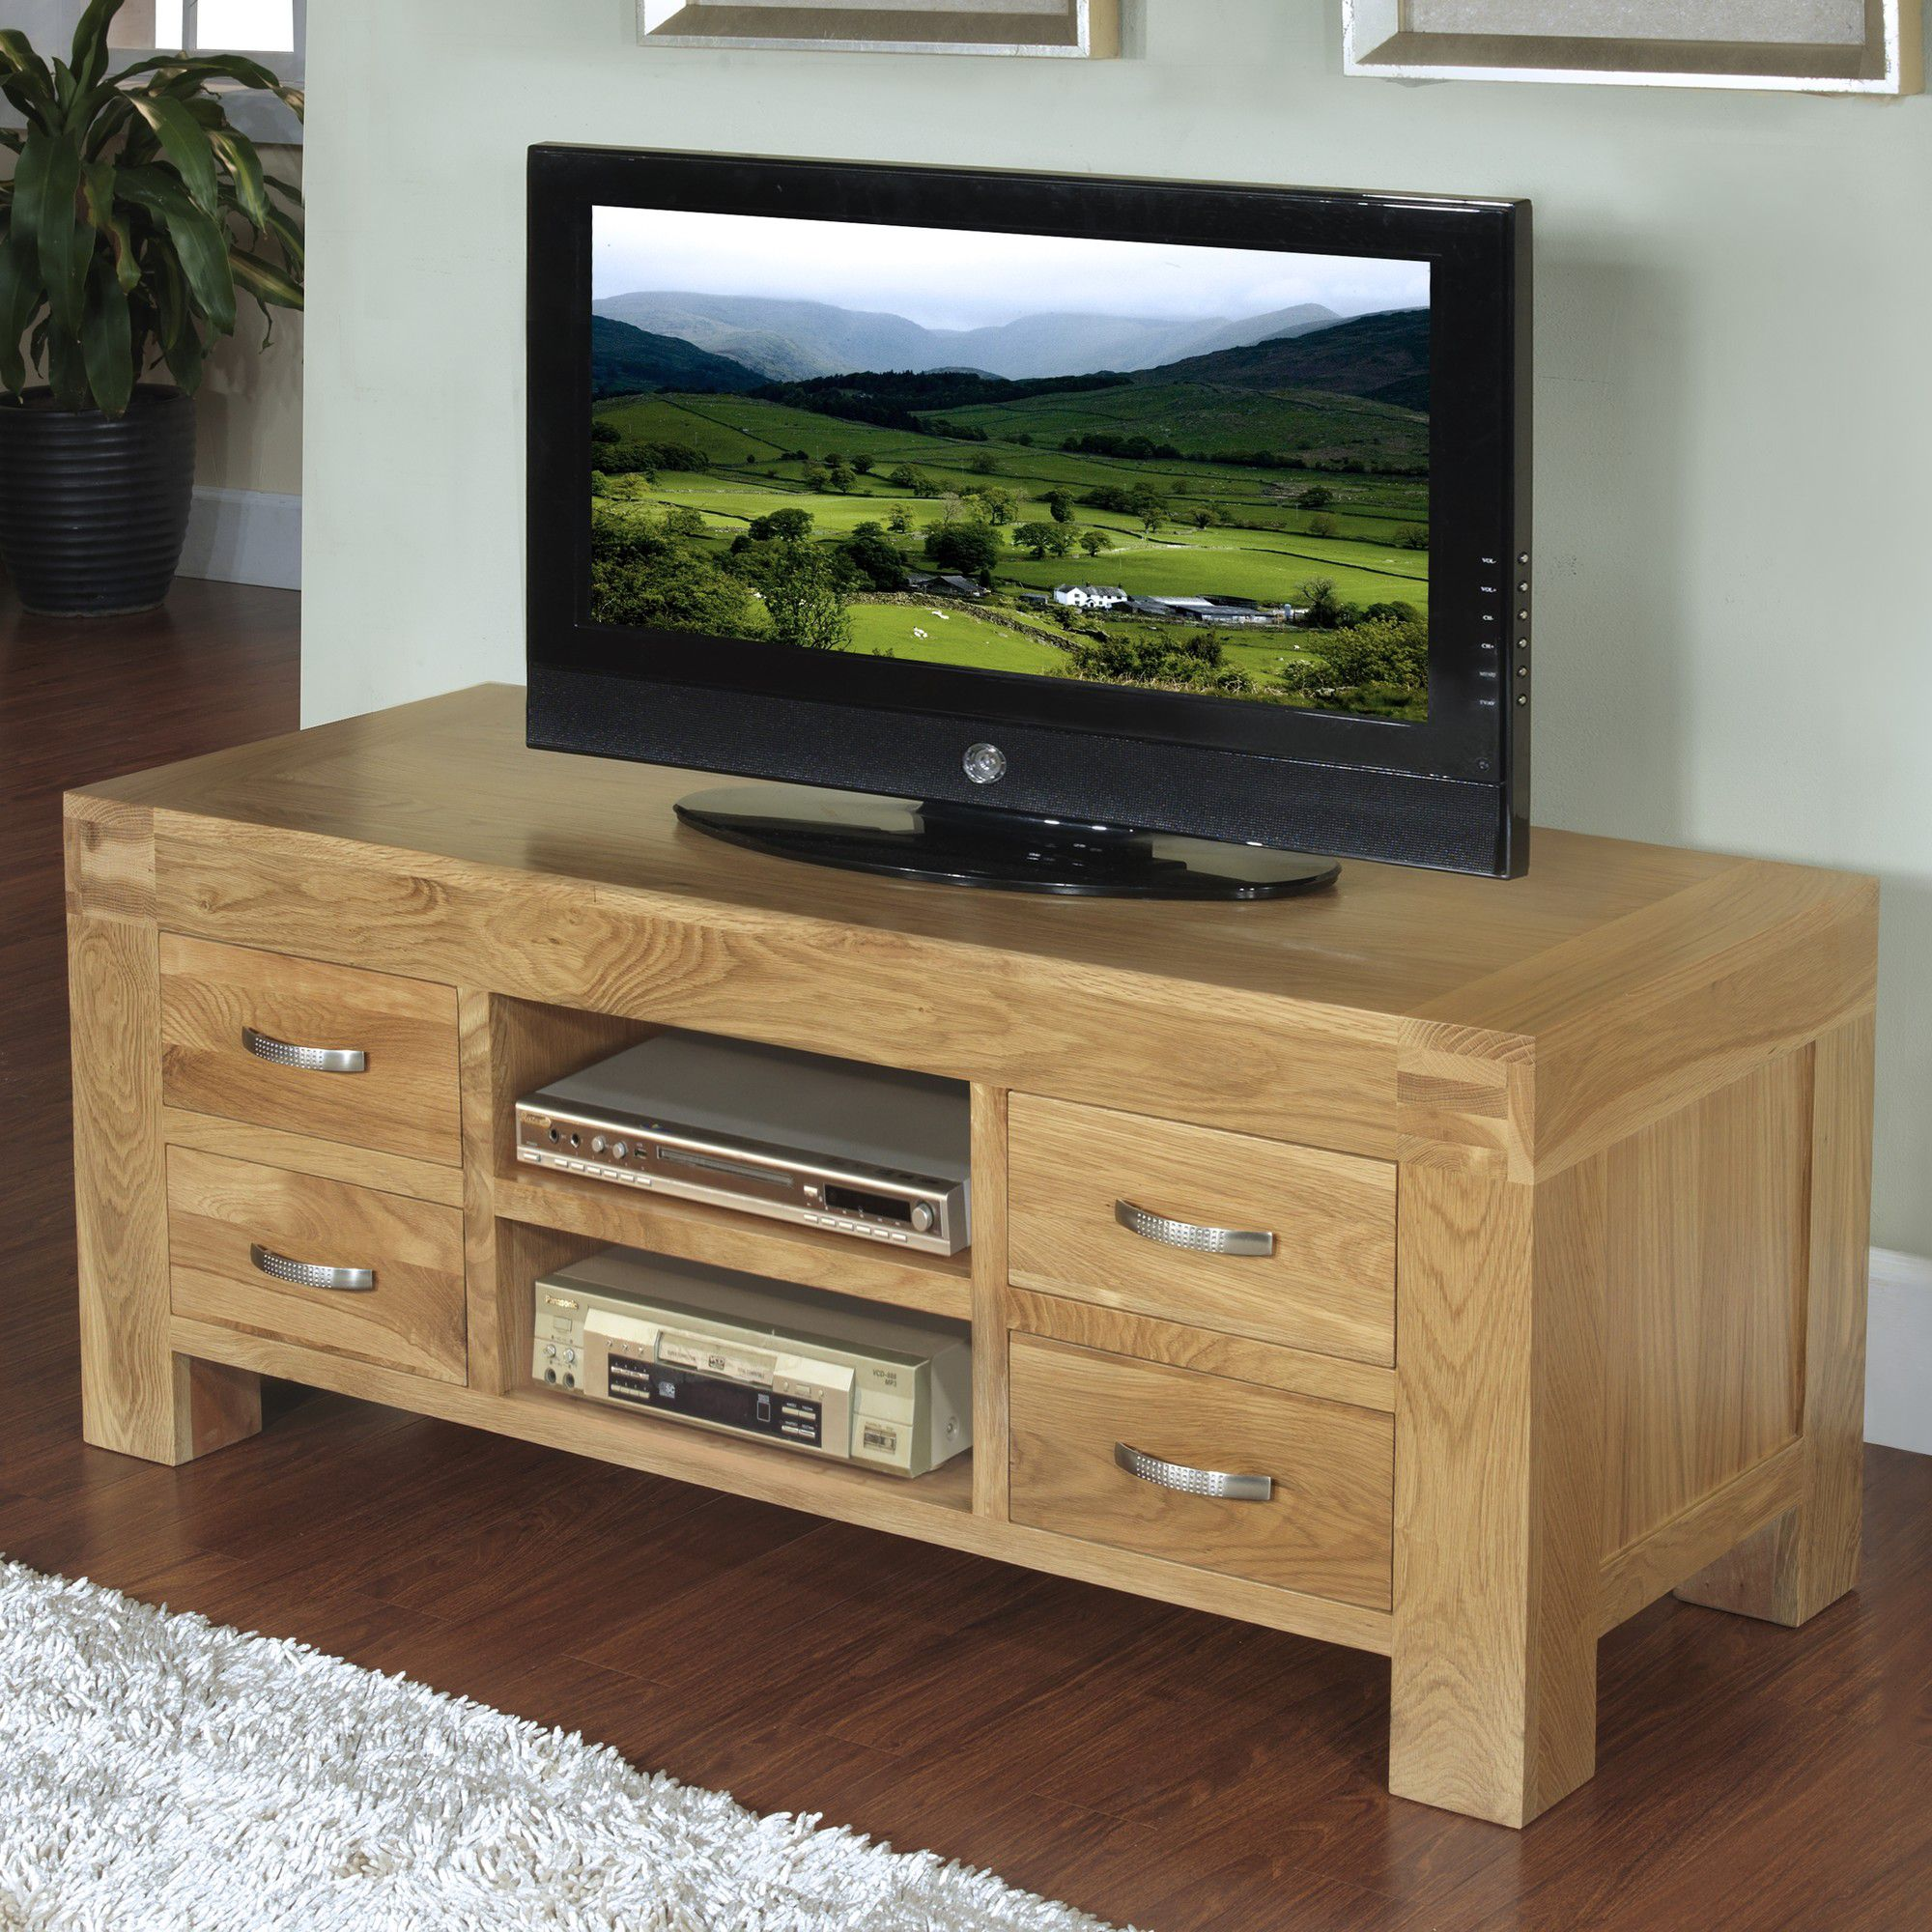 Hawkshead Rustic Oak Blonde TV Cabinet at Tesco Direct